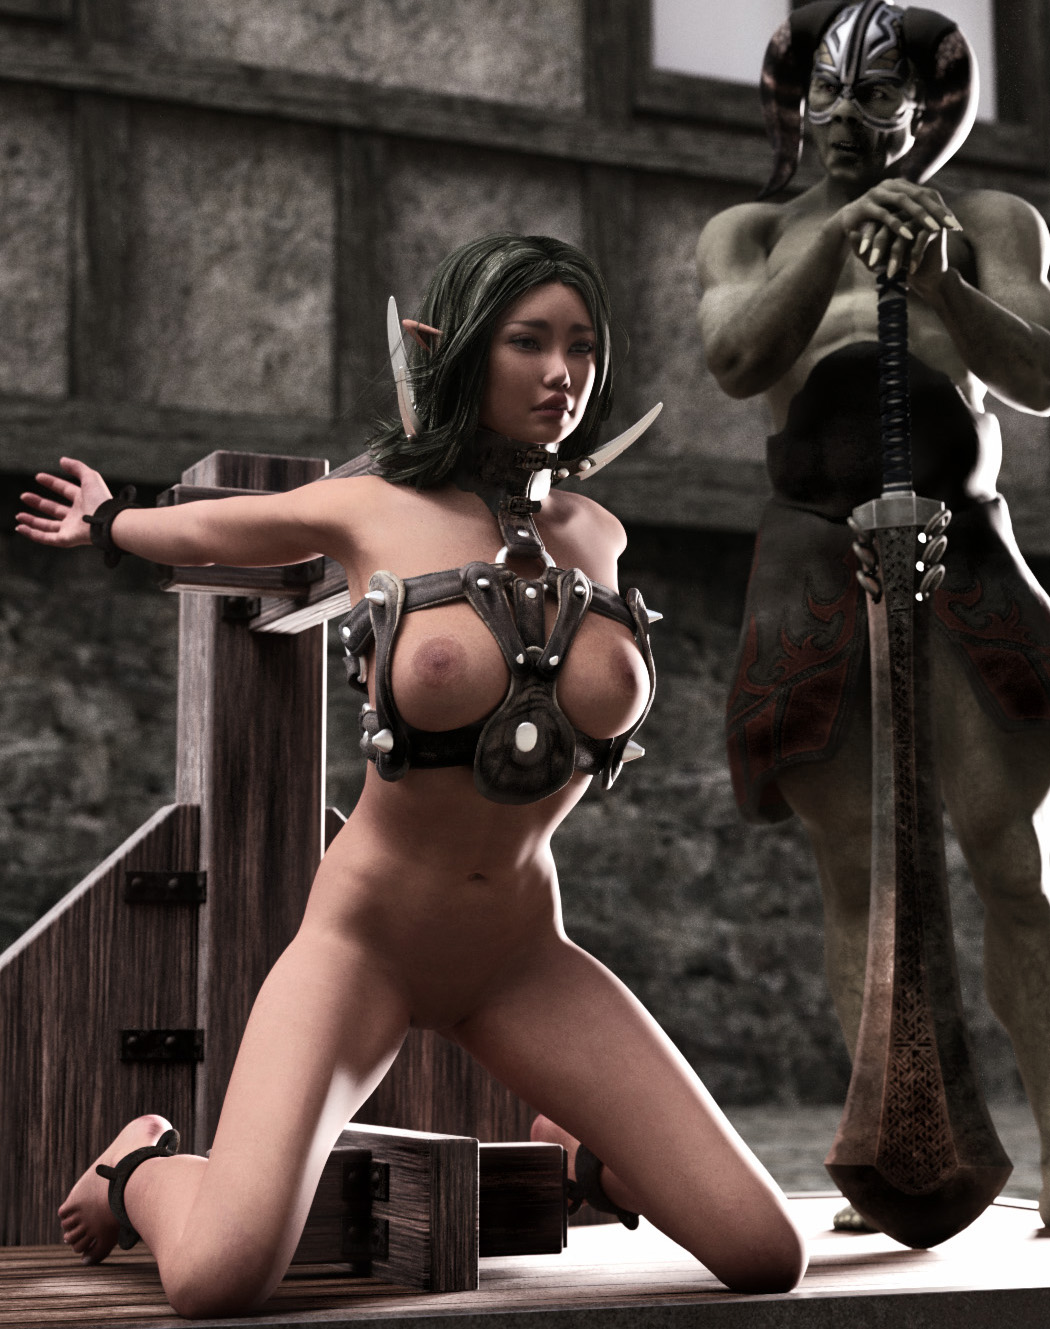 Hentai warrior woman forced sex porncraft toons